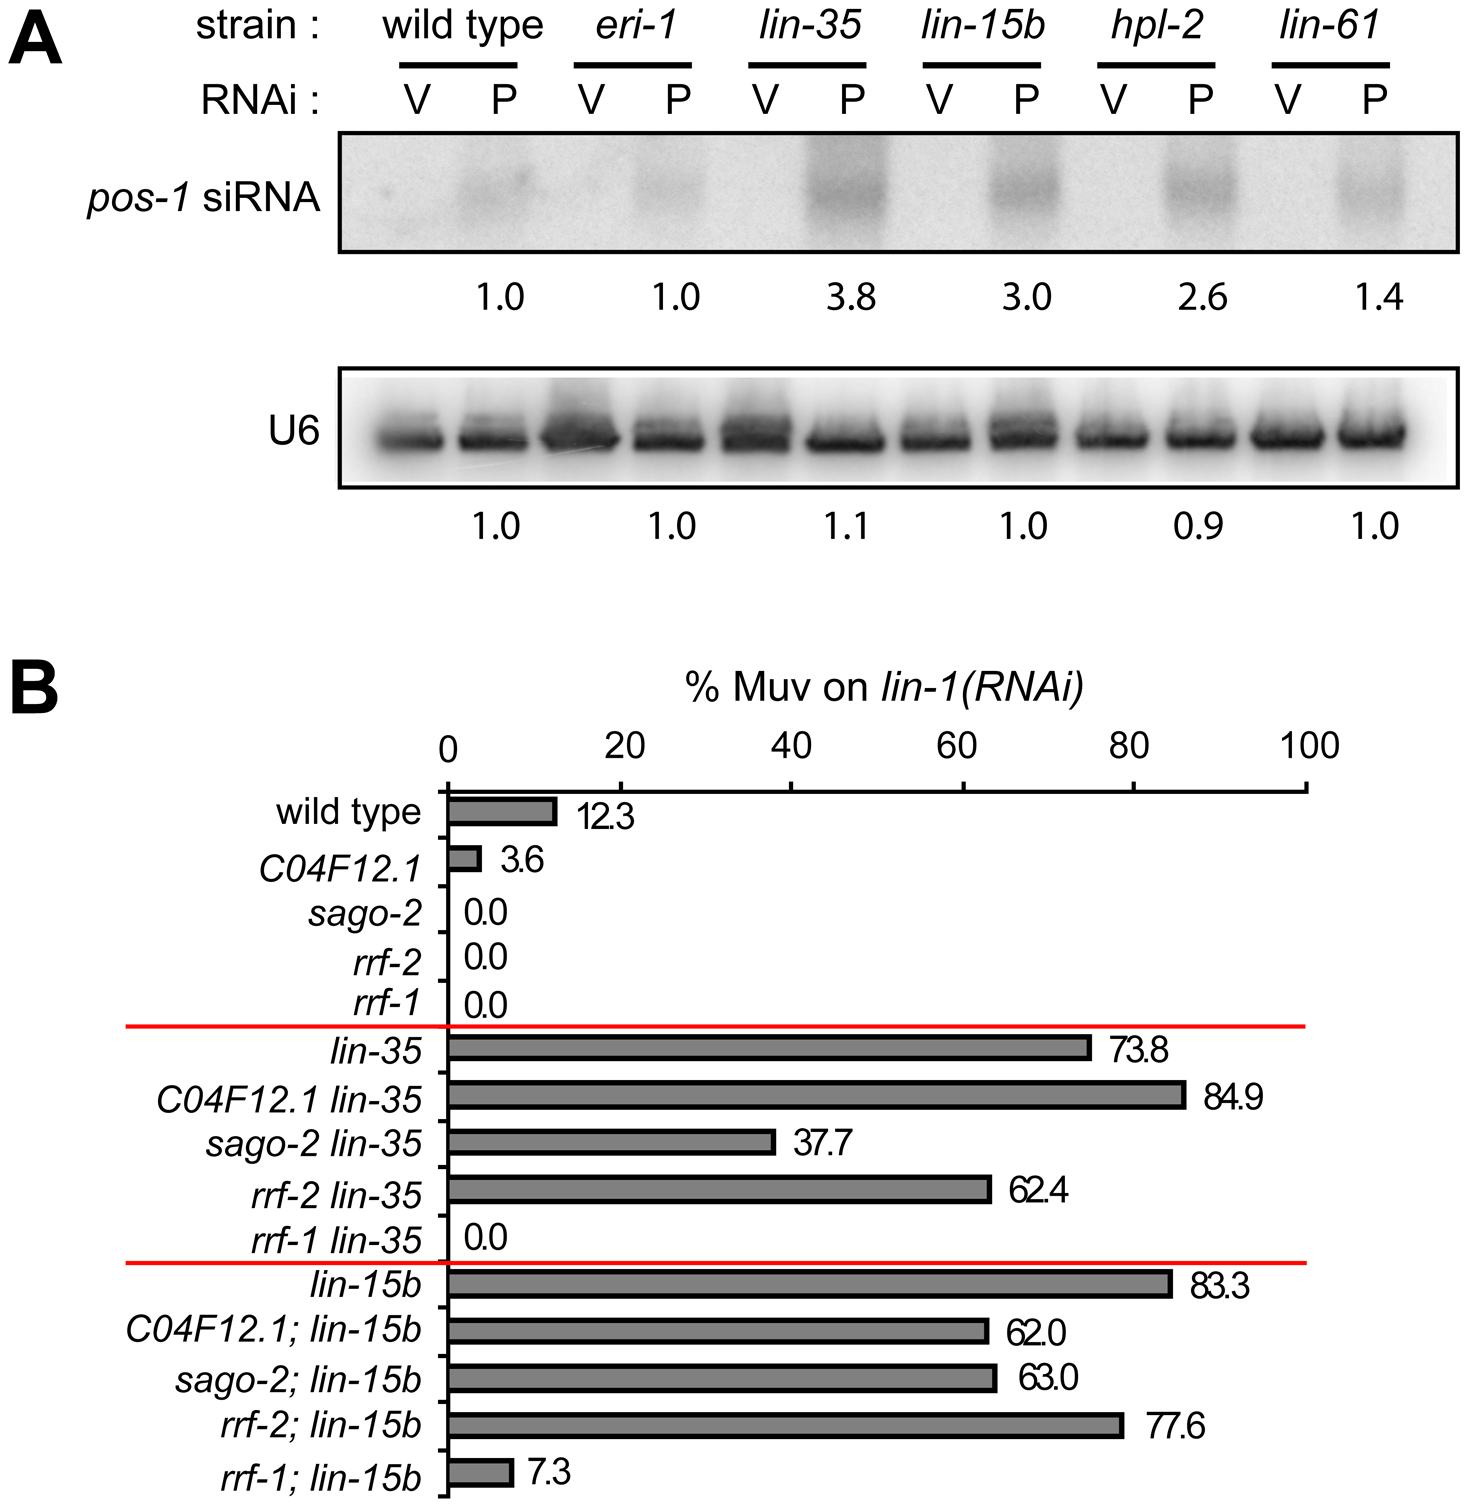 Transcriptional misregulations partially contribute to the enhanced RNAi response of synMuv B mutants.